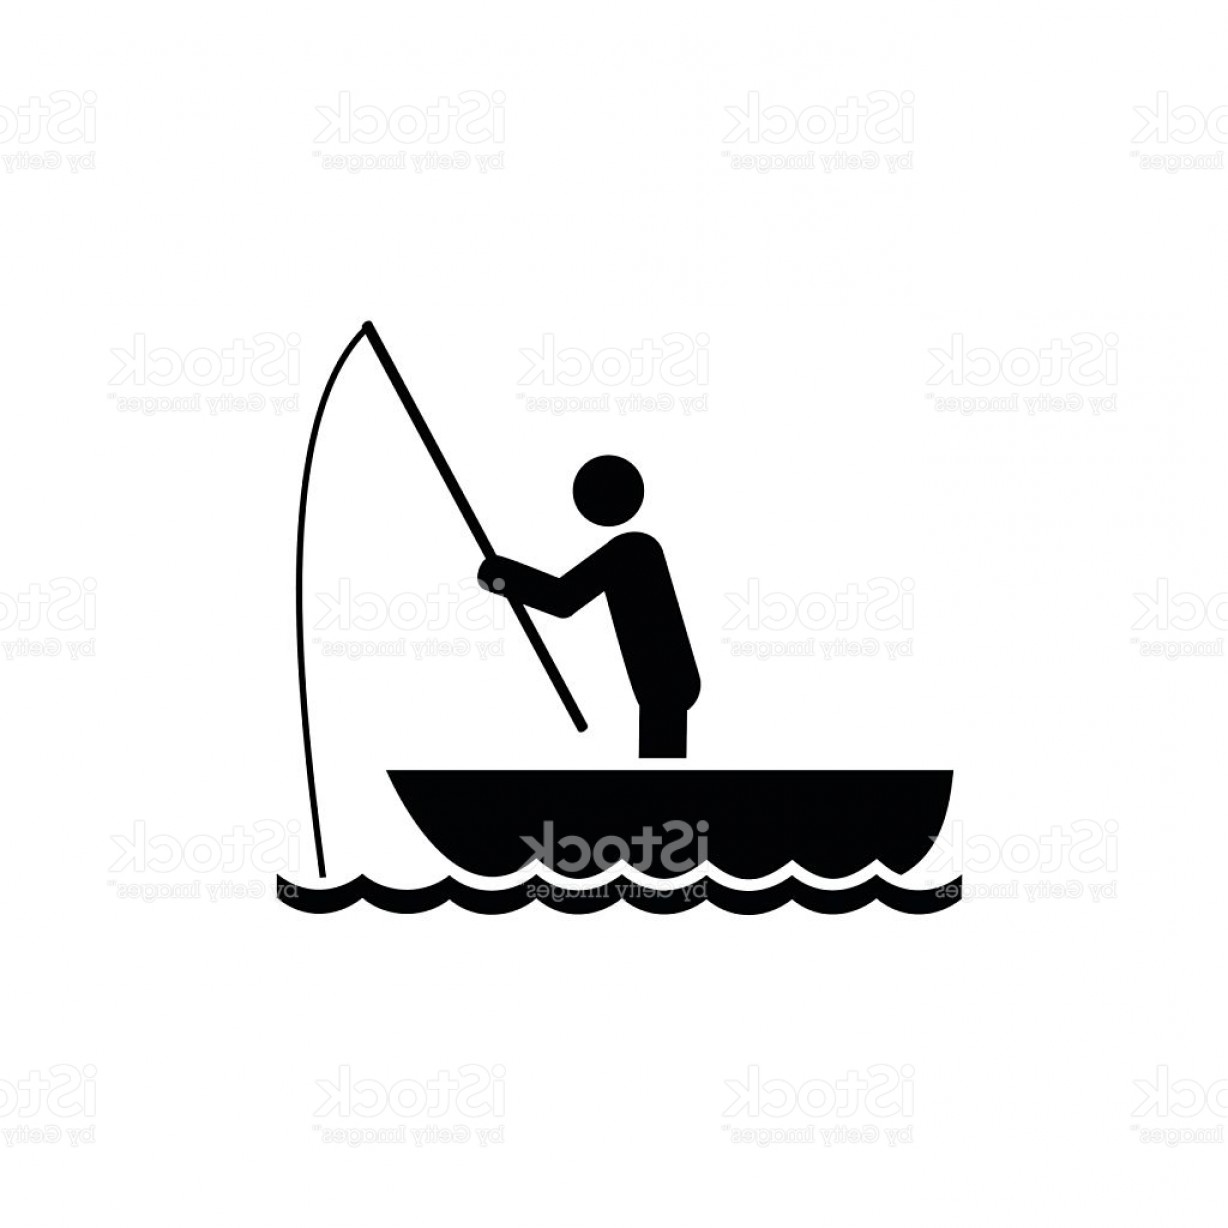 Bass Boat Silhouette At Getdrawings